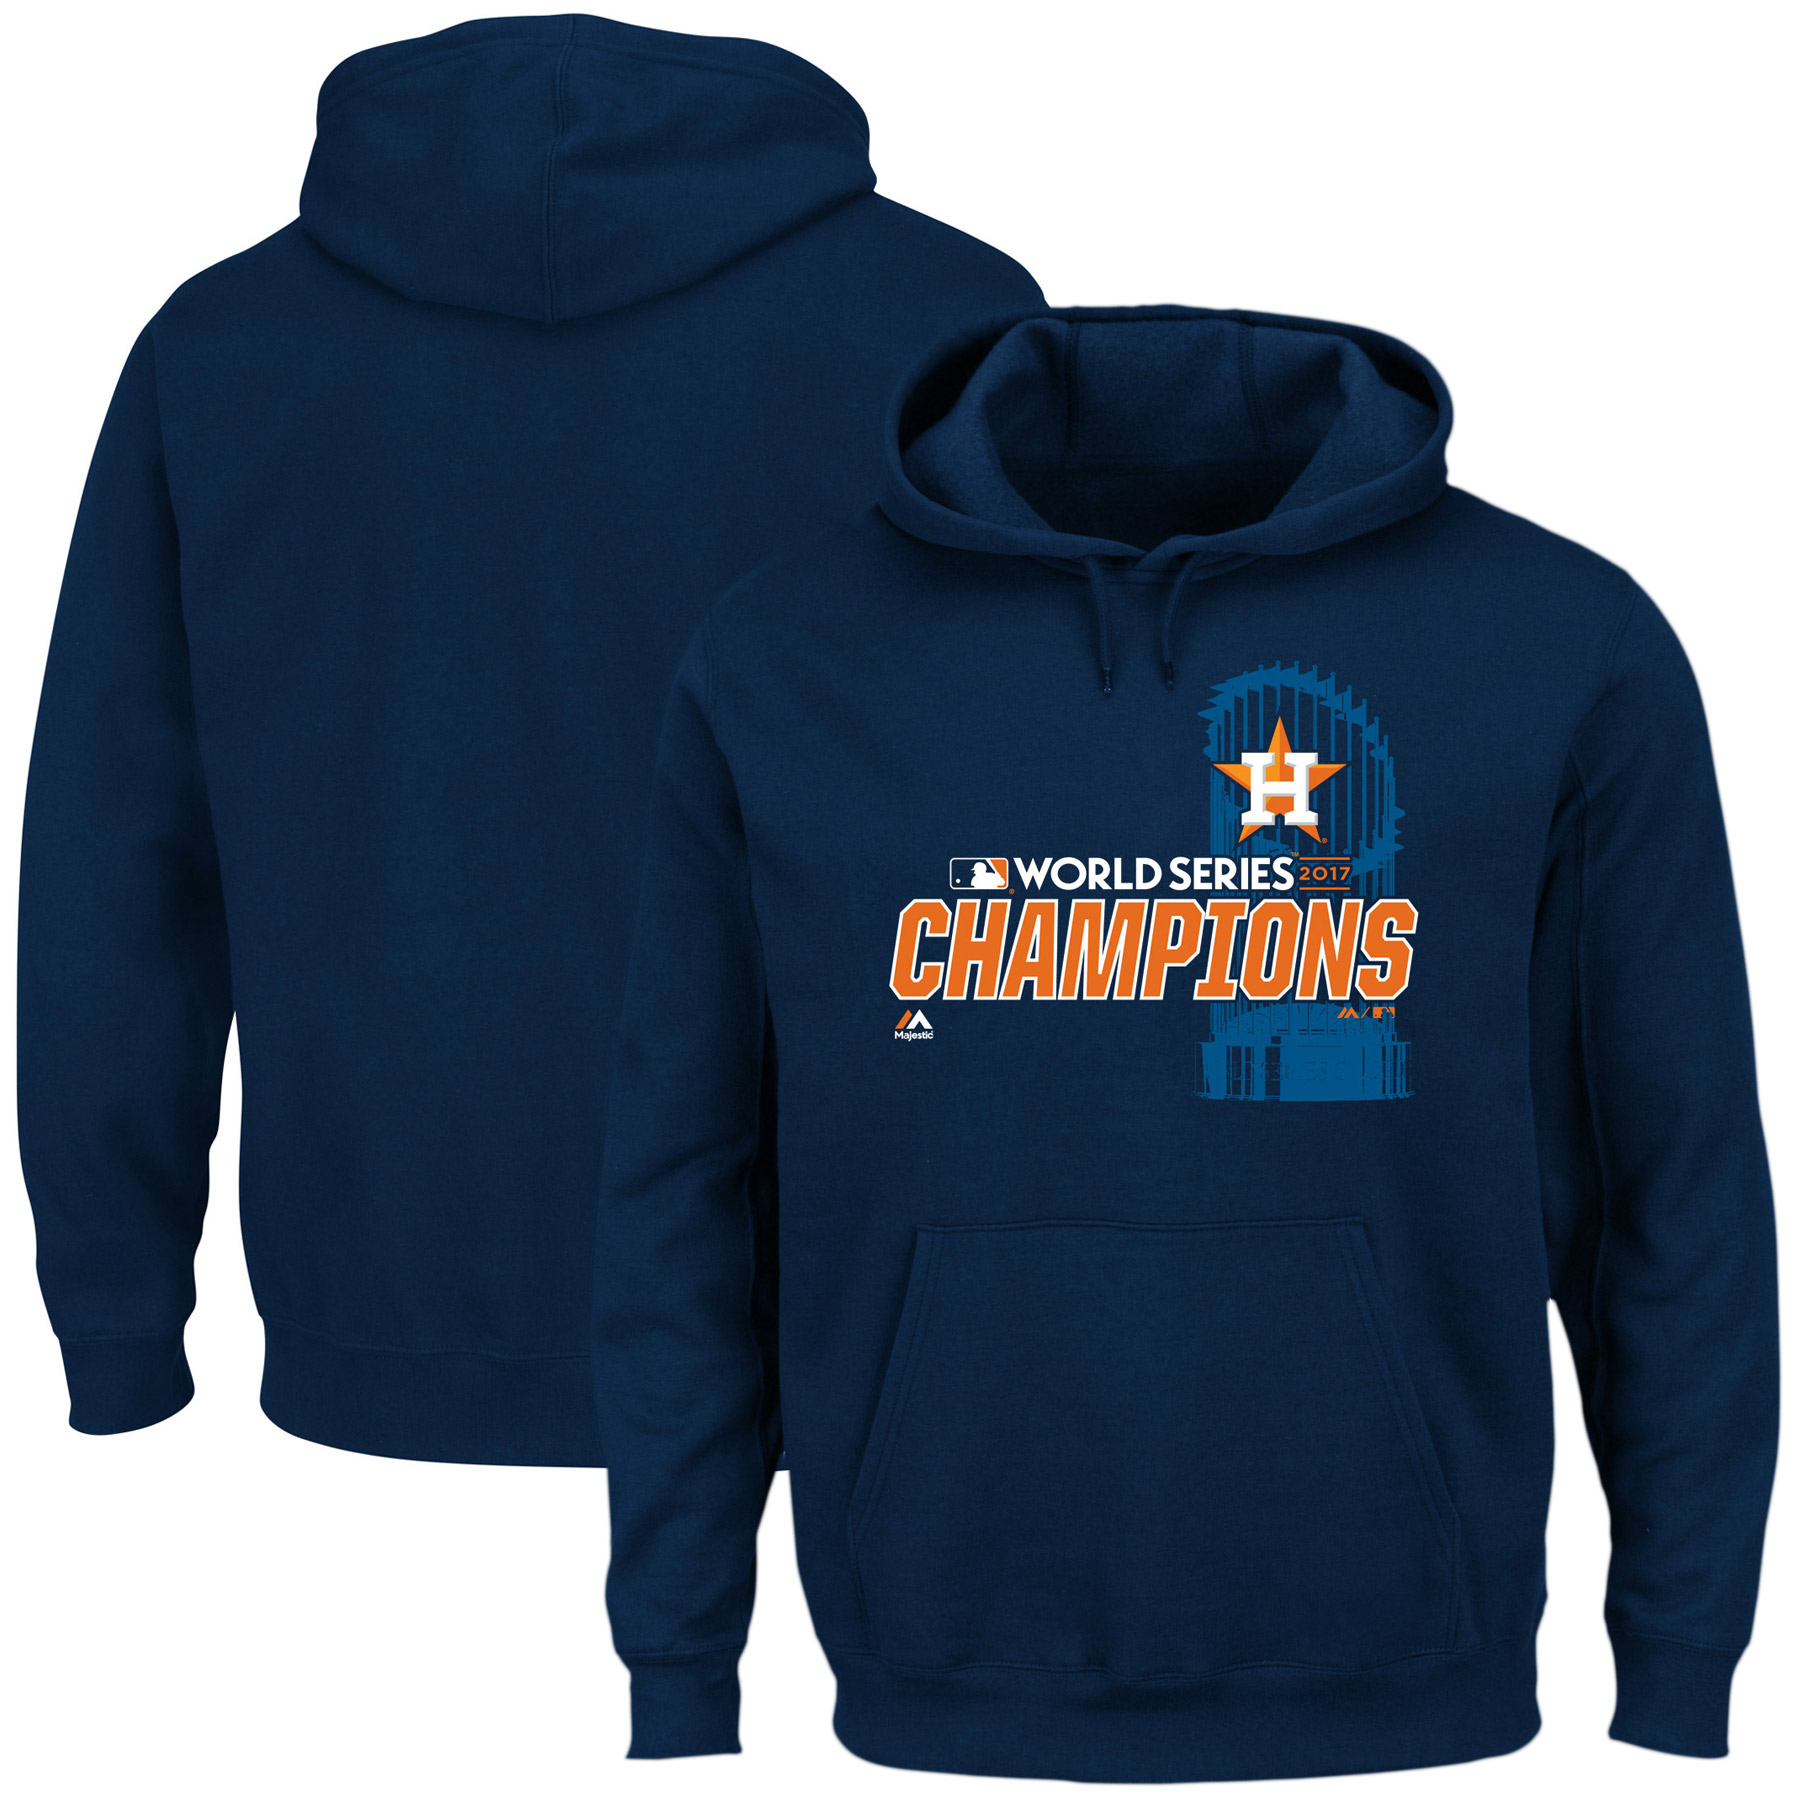 Men's Majestic Navy Houston Astros 2017 World Series Champions Favorite Hoodie